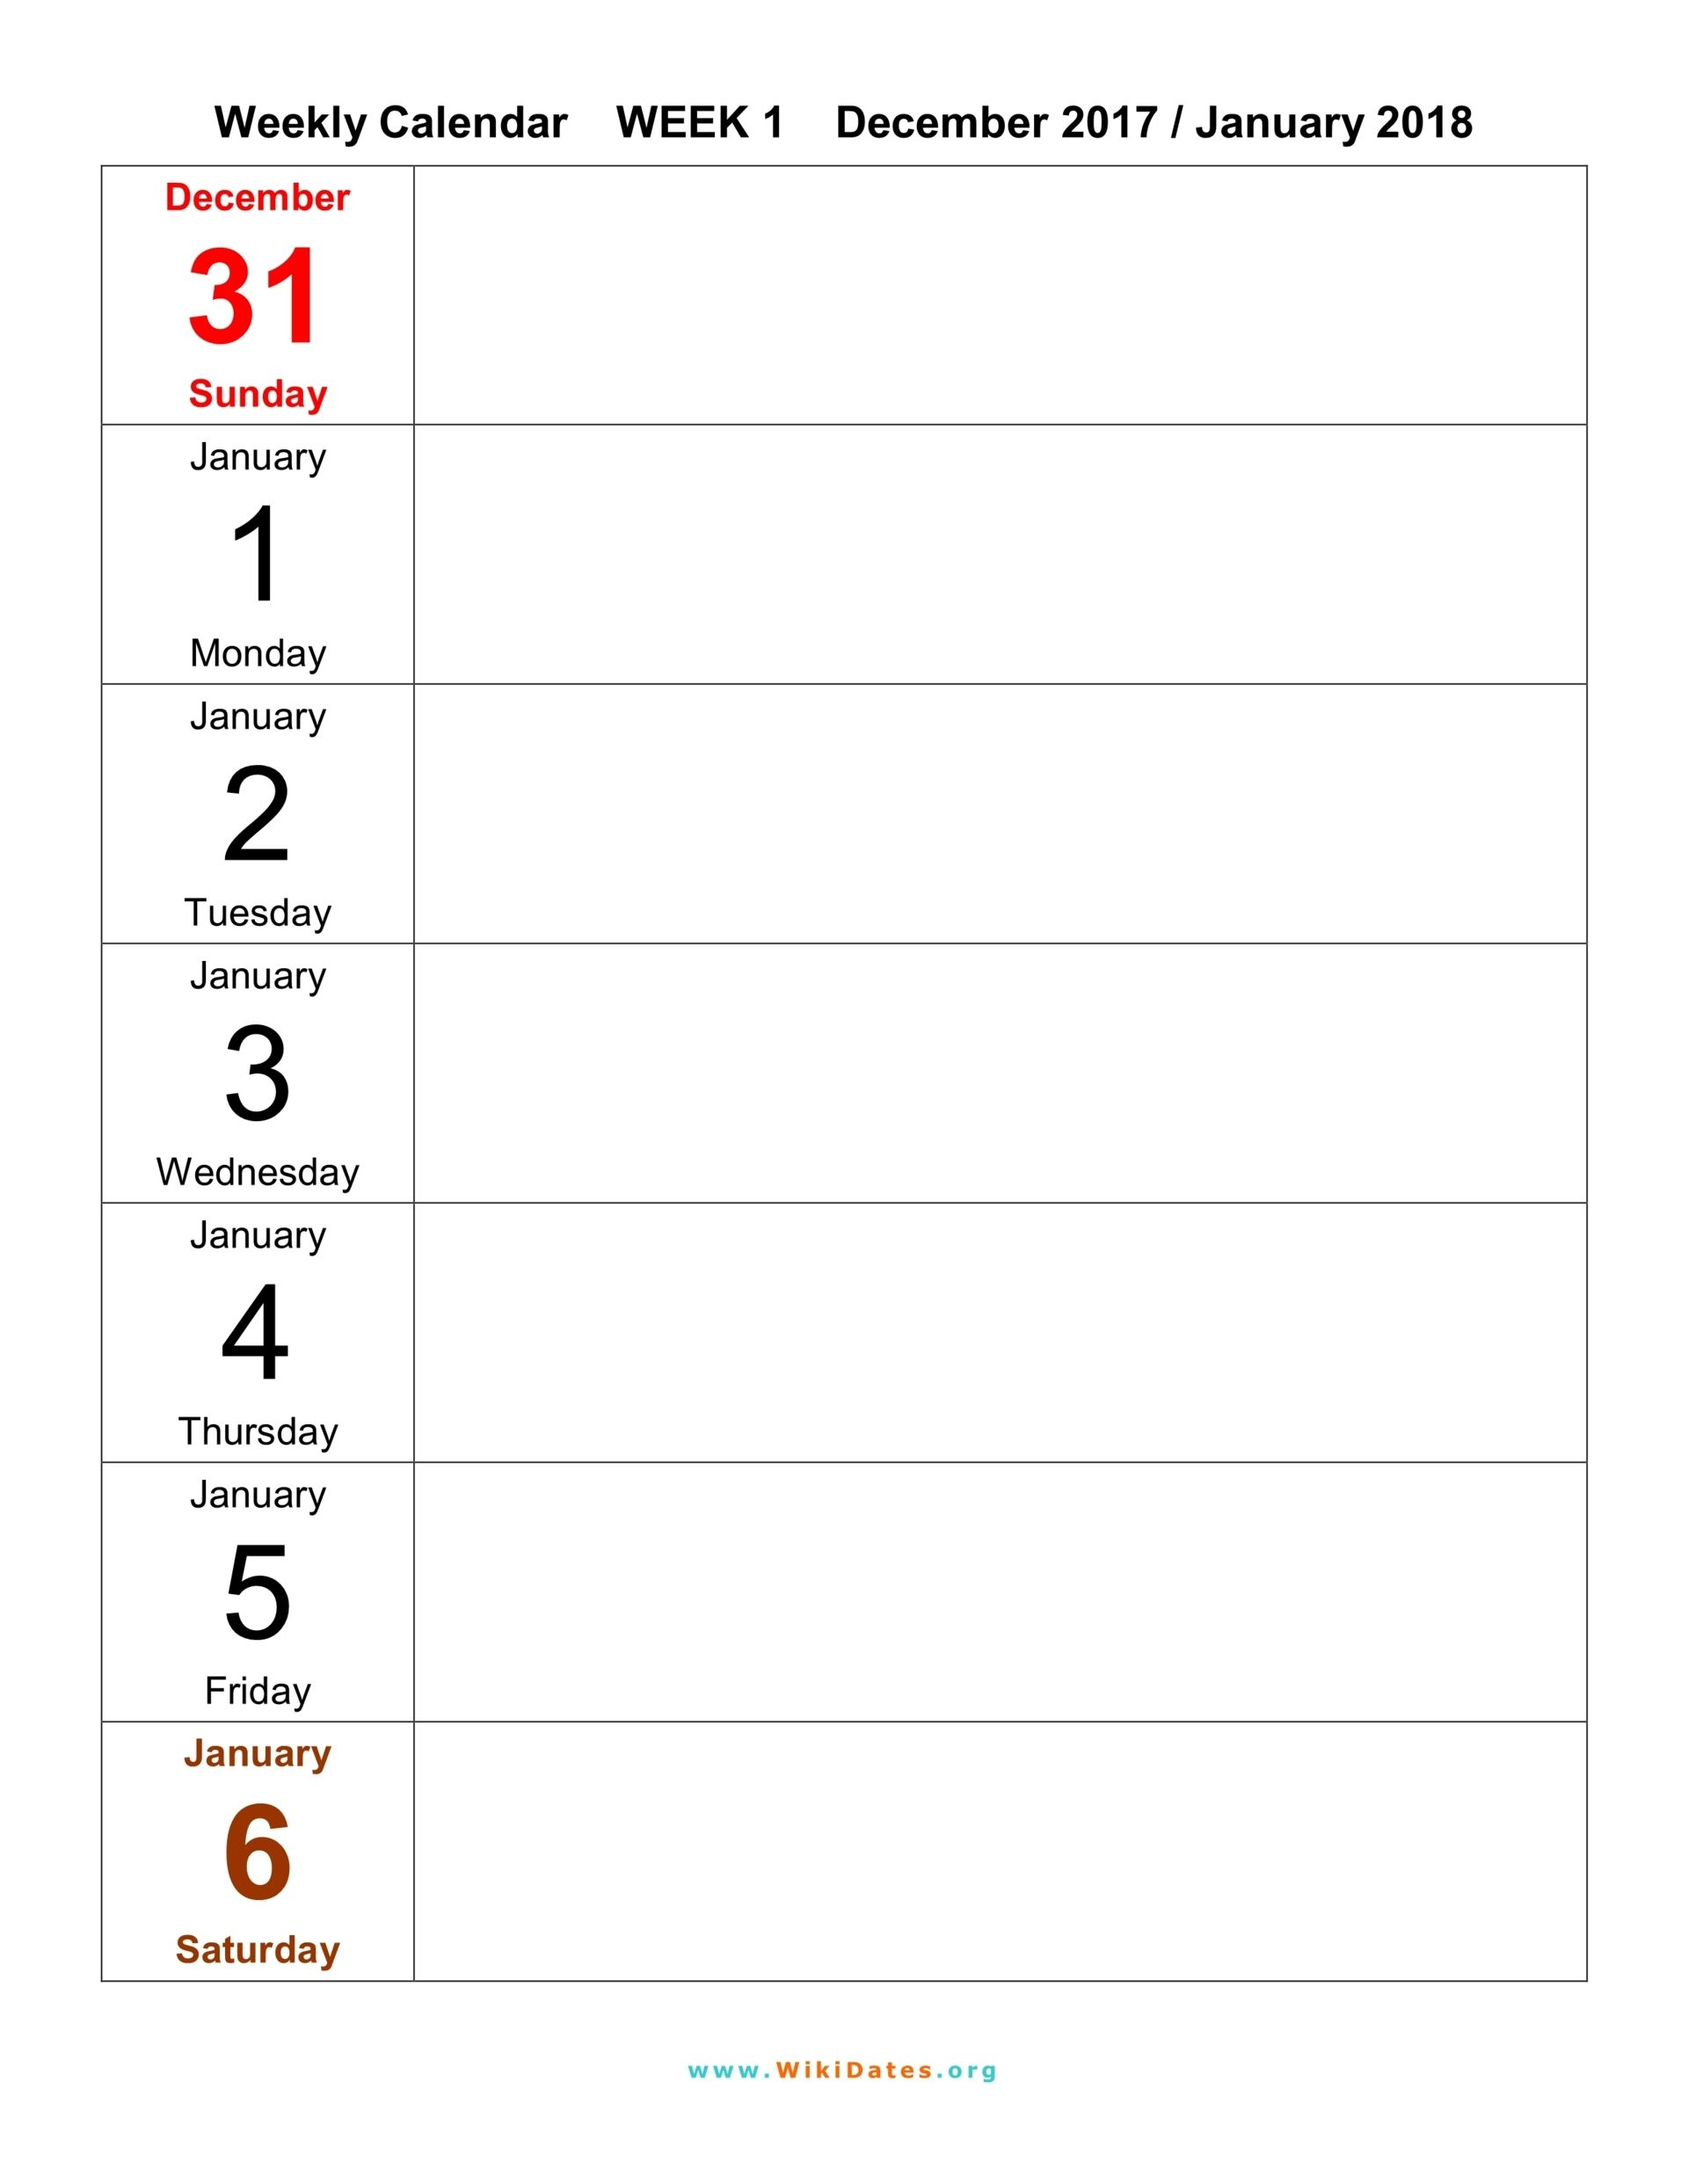 Weekly Calendar  Template   Organization Hacks For